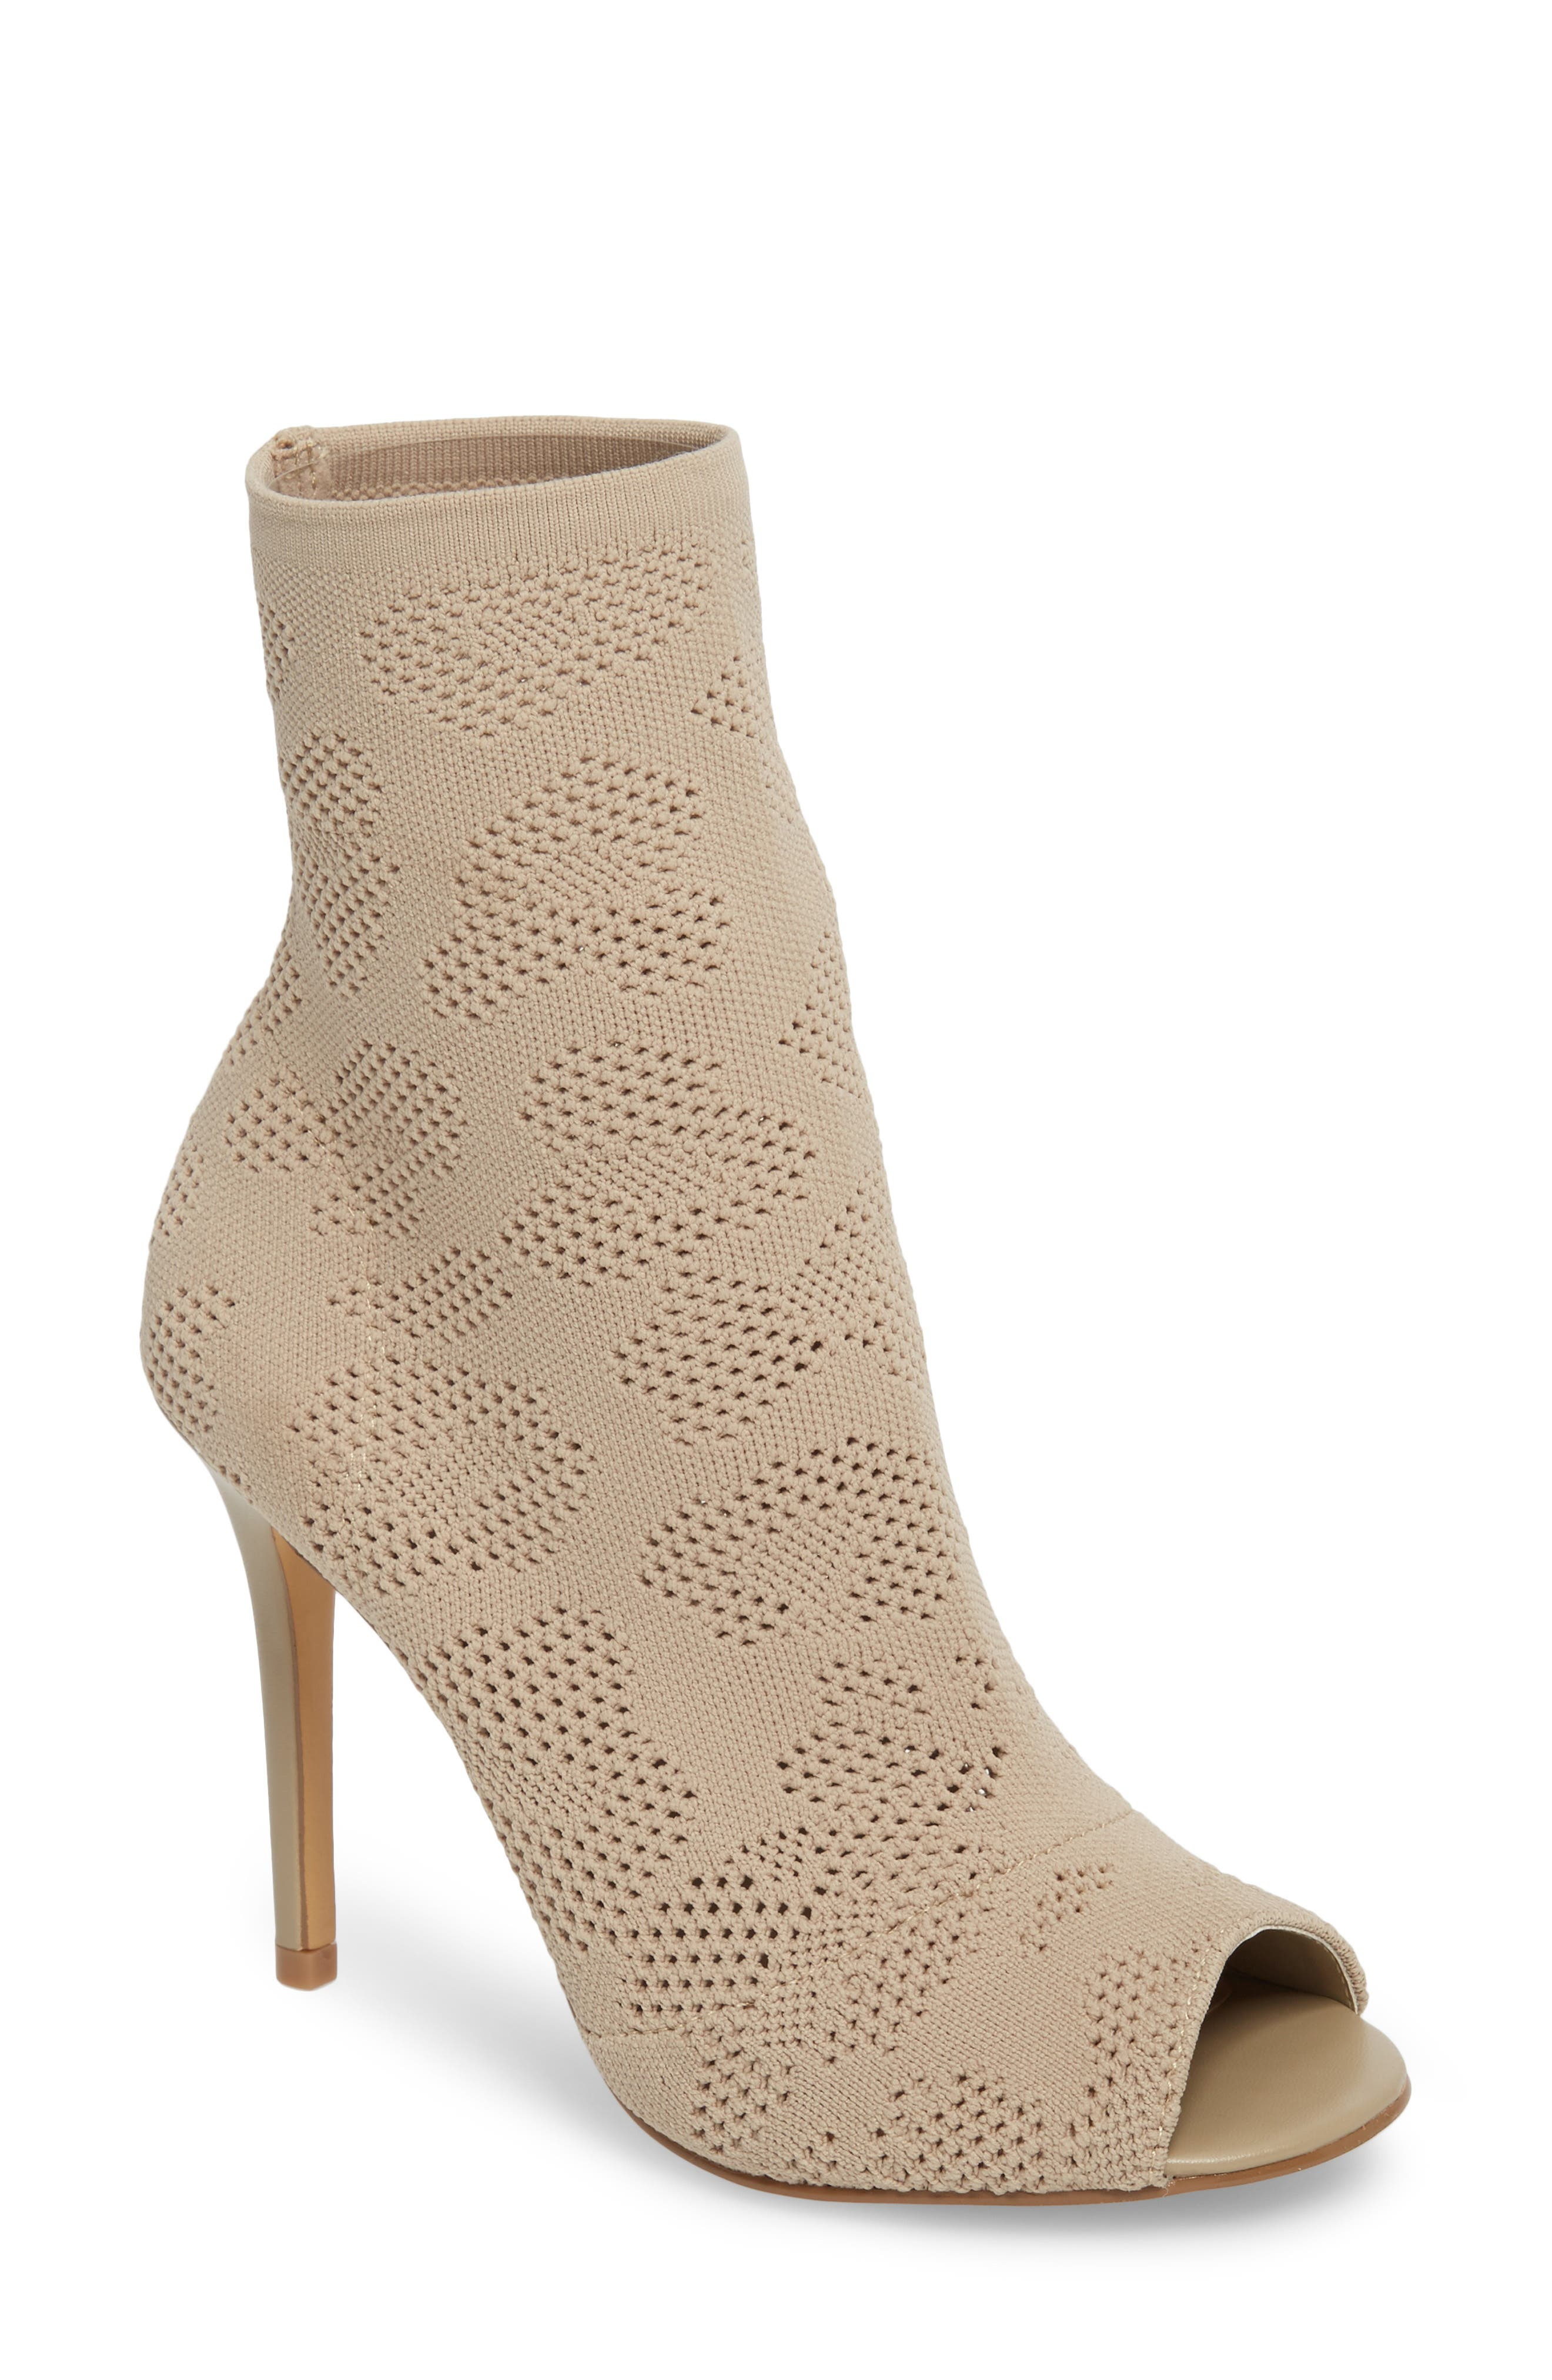 Ranger Sock Knit Open Toe Bootie,                             Main thumbnail 1, color,                             Nude Stretch Fabric